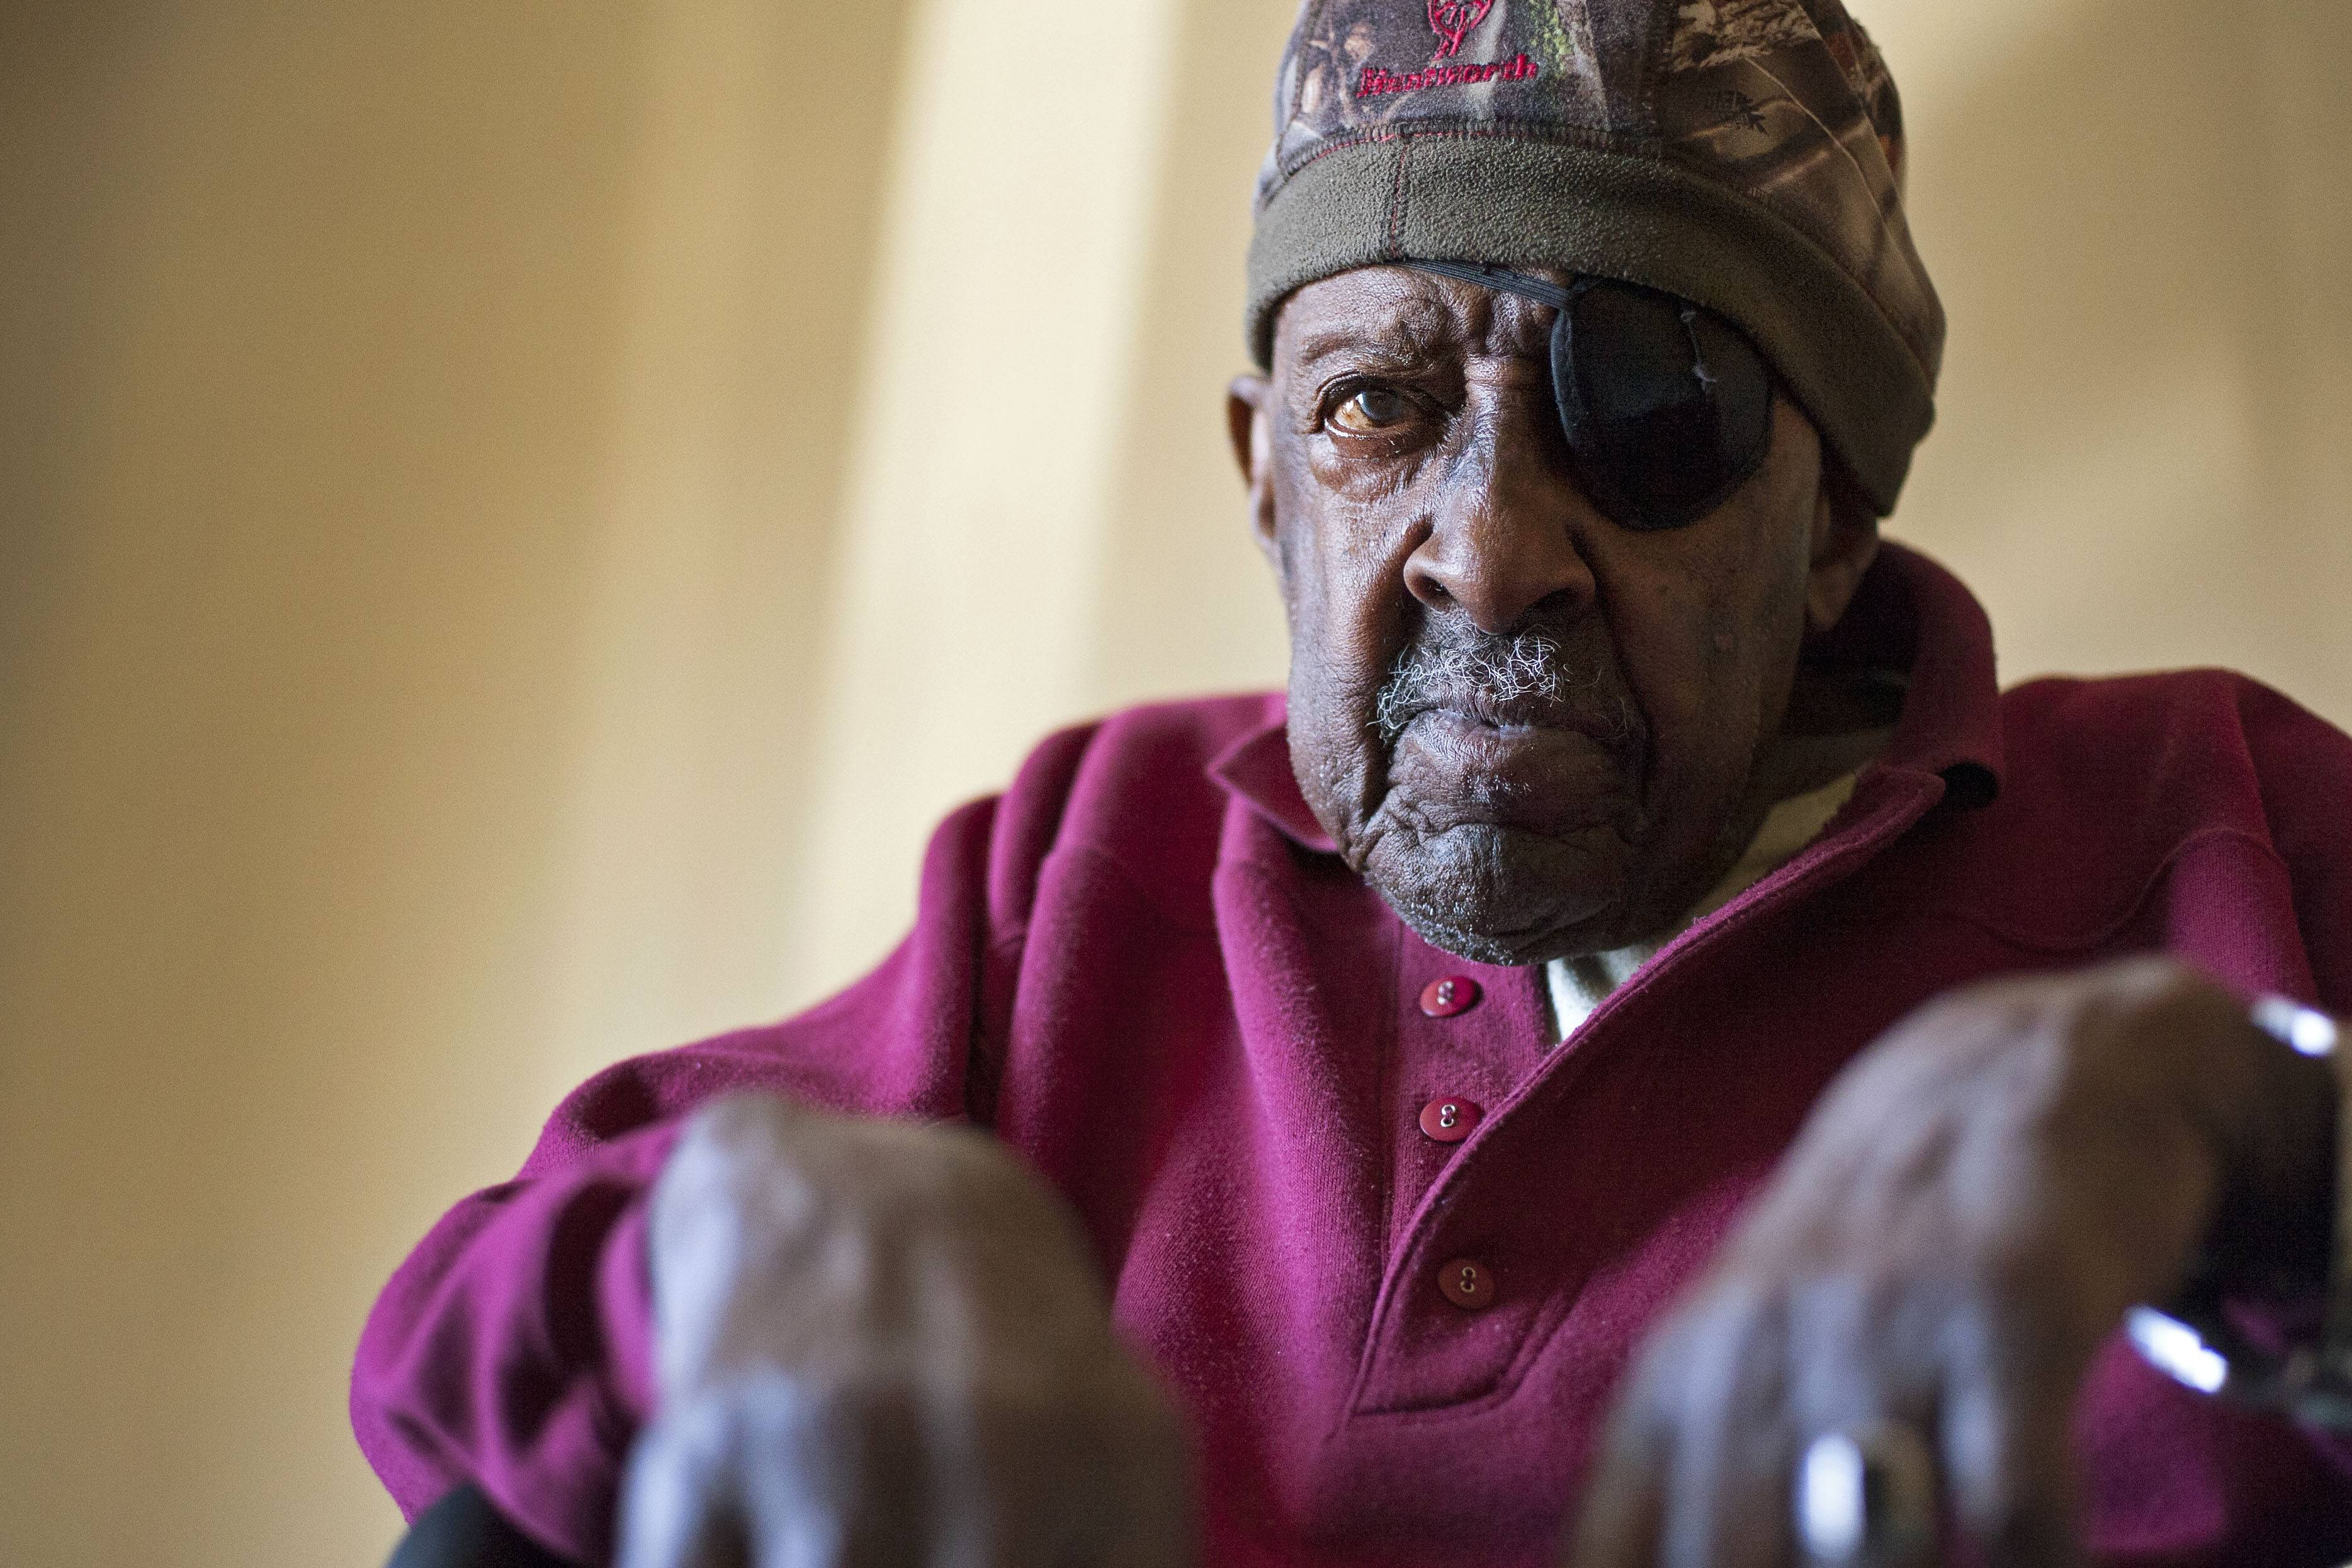 Samuel Wesley Samples, an 88-year-old World War II veteran, at the American Best Value Inn in Marion.